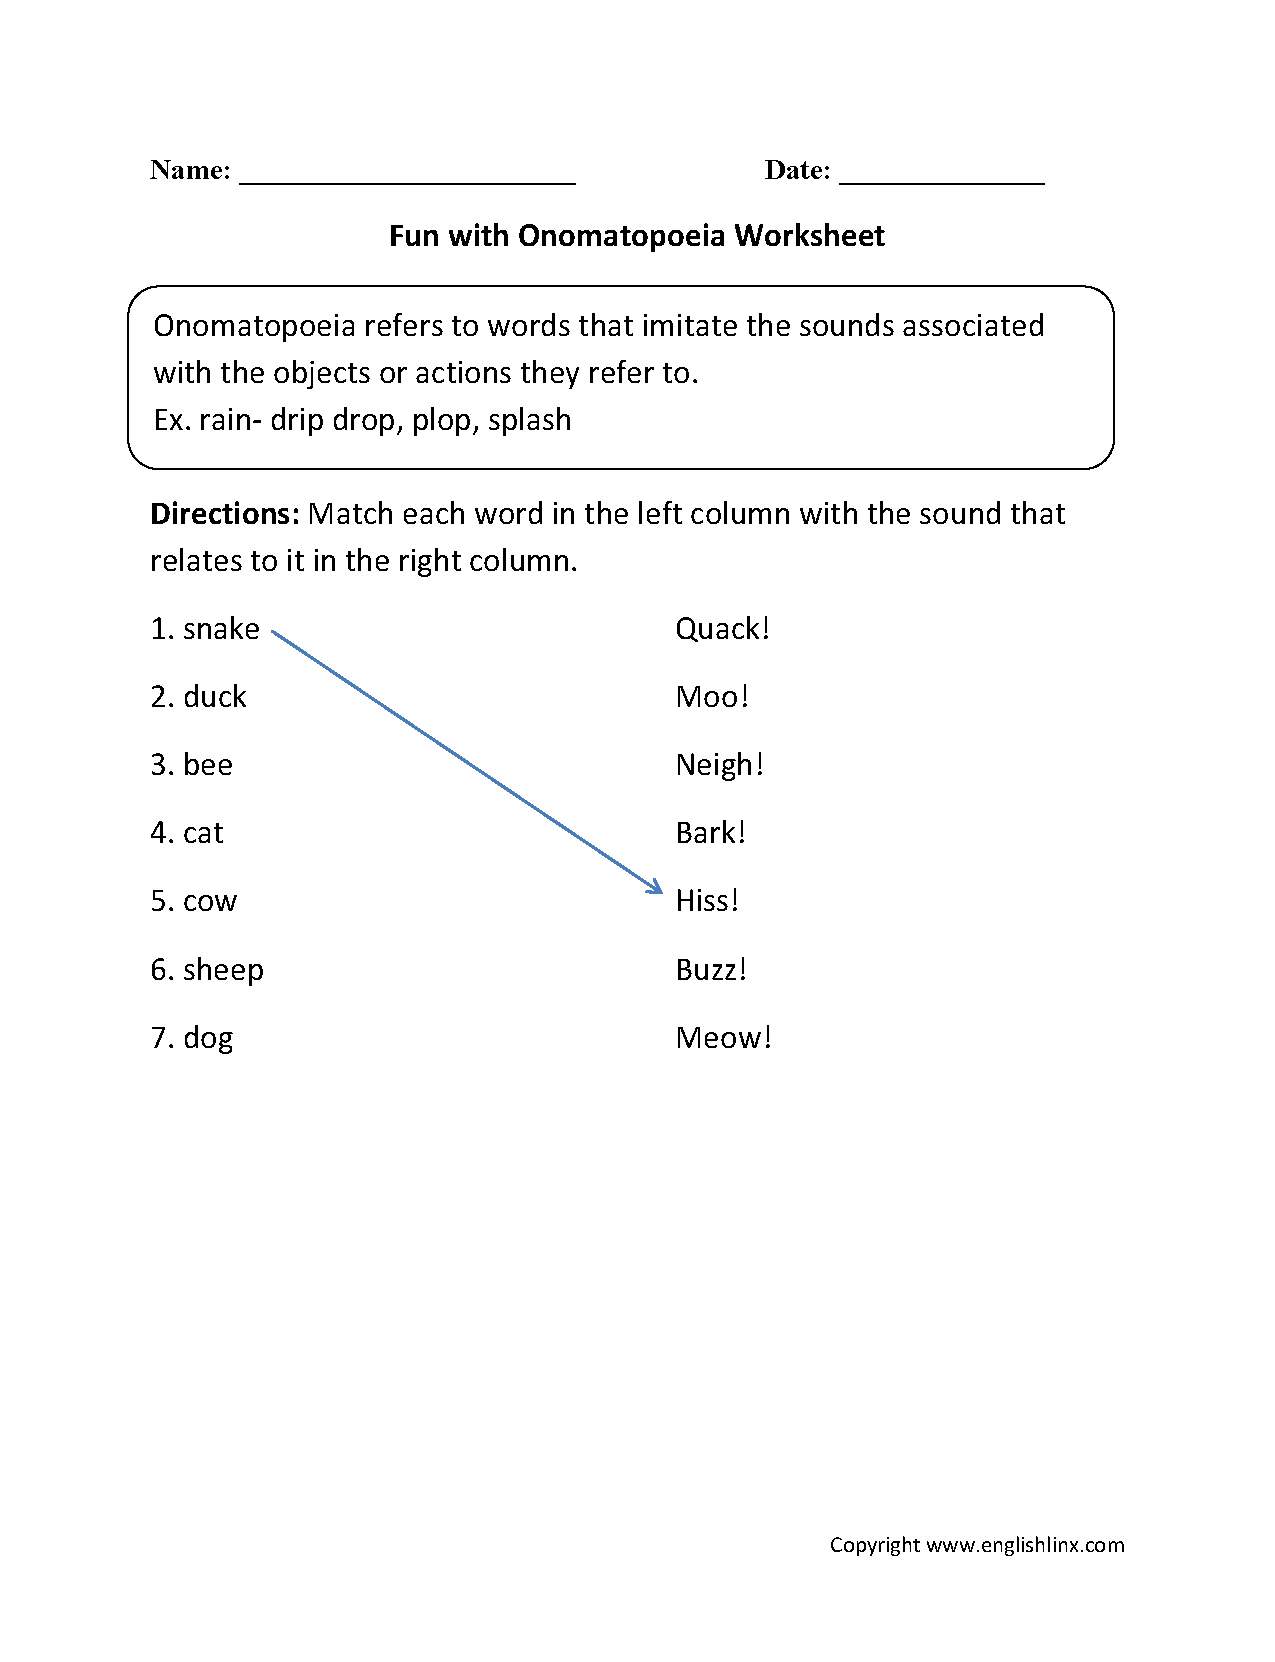 Worksheets 3rd Grade Worksheets Pdf 3rd grade vocabulary worksheets pdf angel pdf